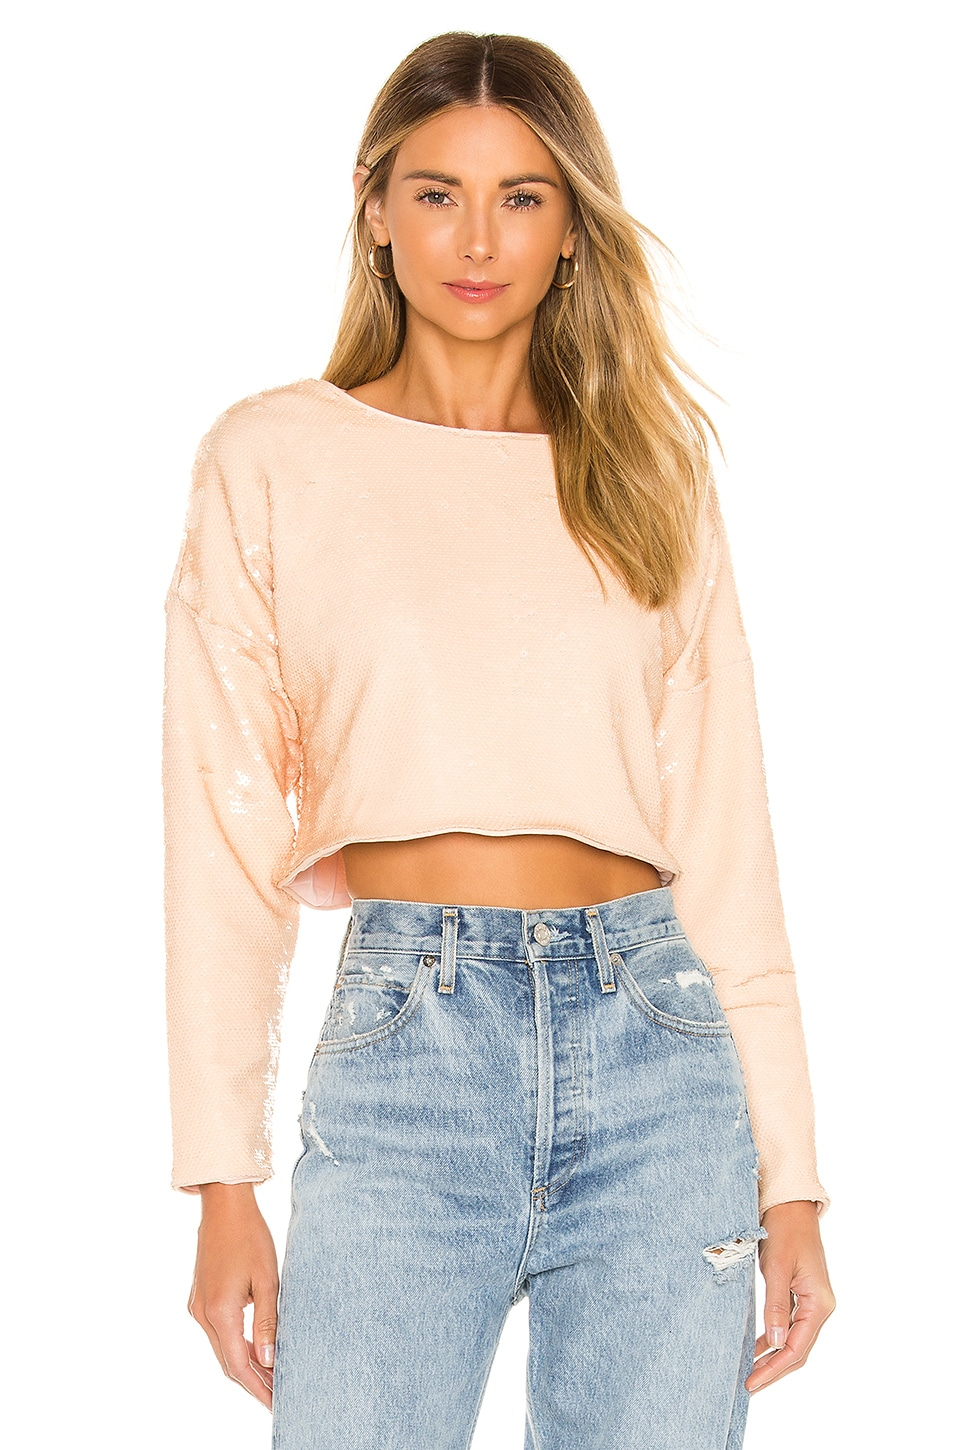 L'Academie TOP CROPPED LACEY